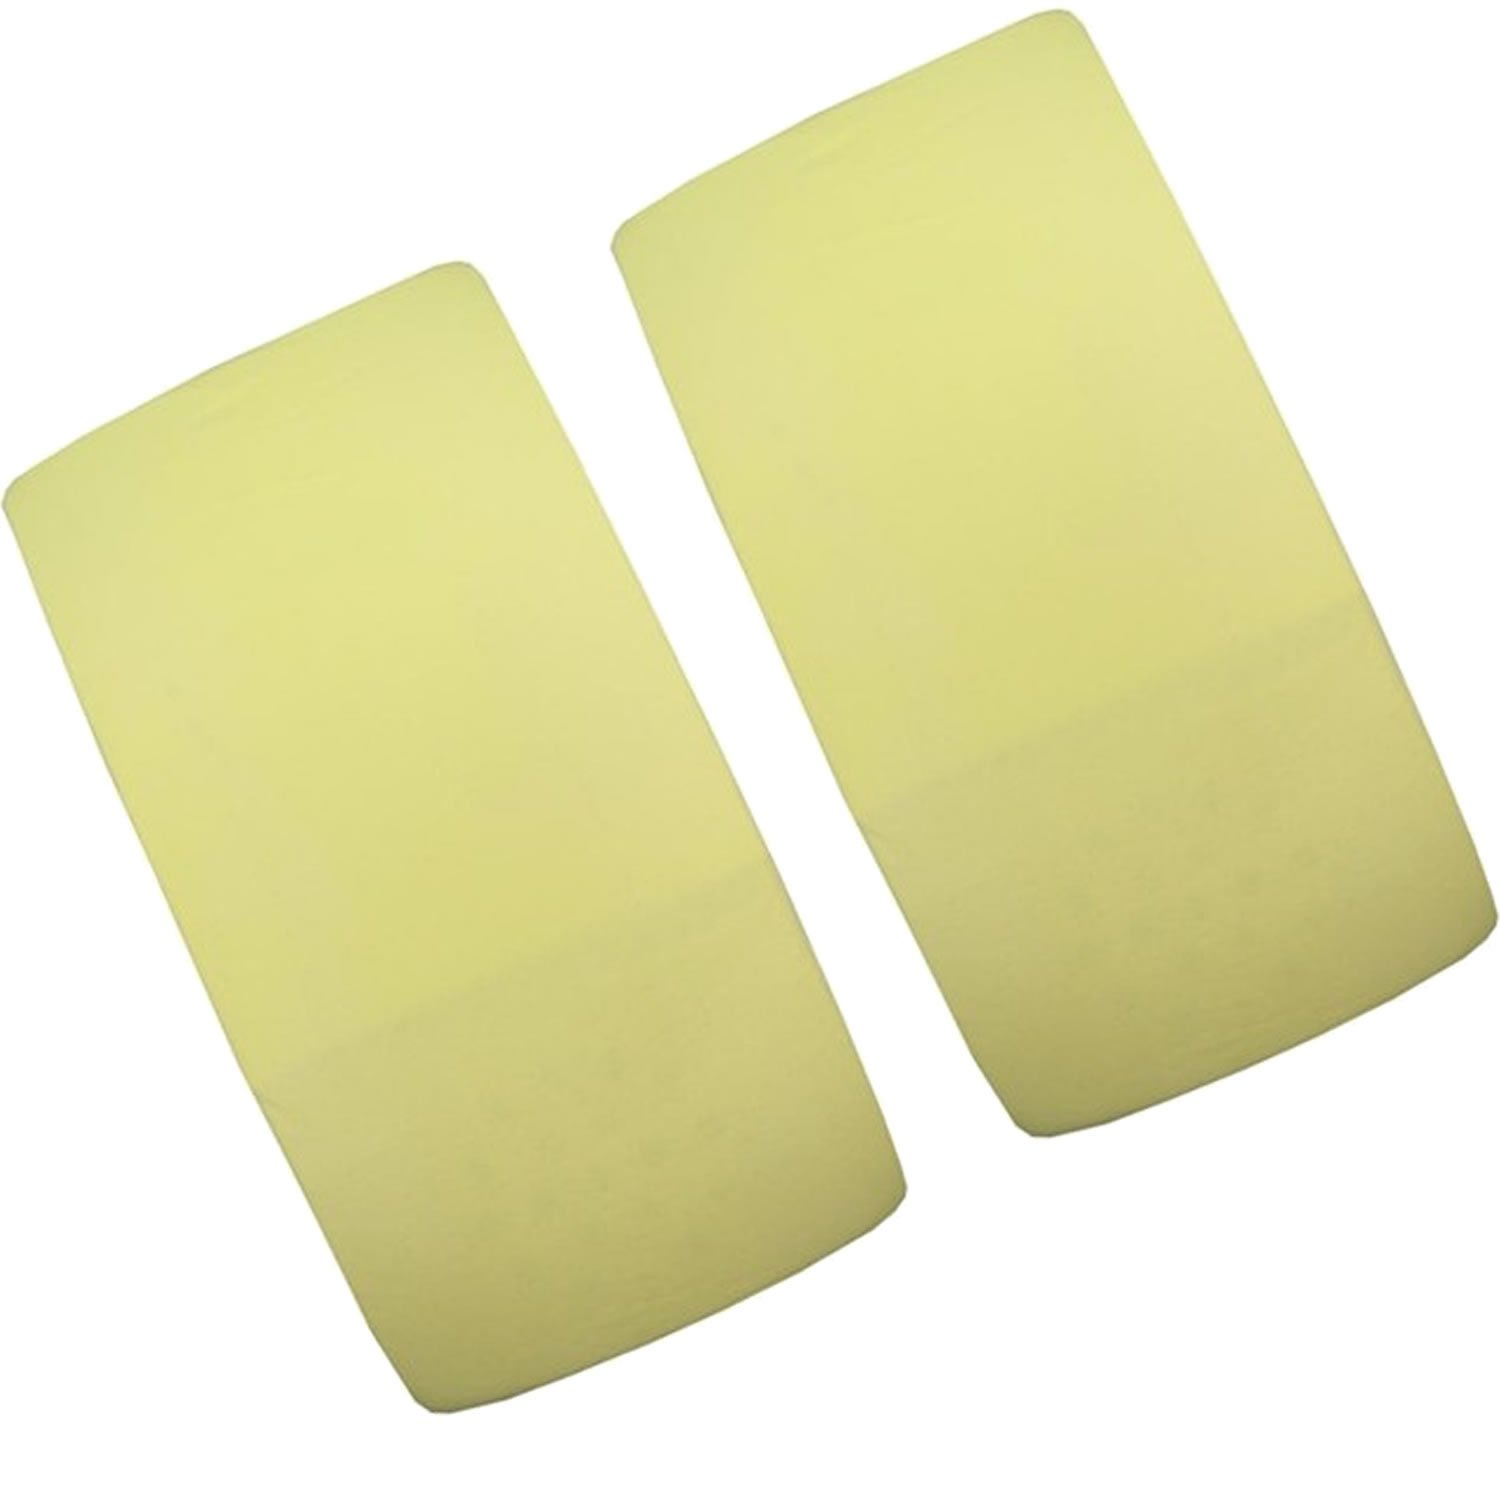 2/x cuna Jersey S/ábana Bajera ajustable 100/% algod/ón 120/cm x 60/cm color amarillo yellow-by For-your-Little-One